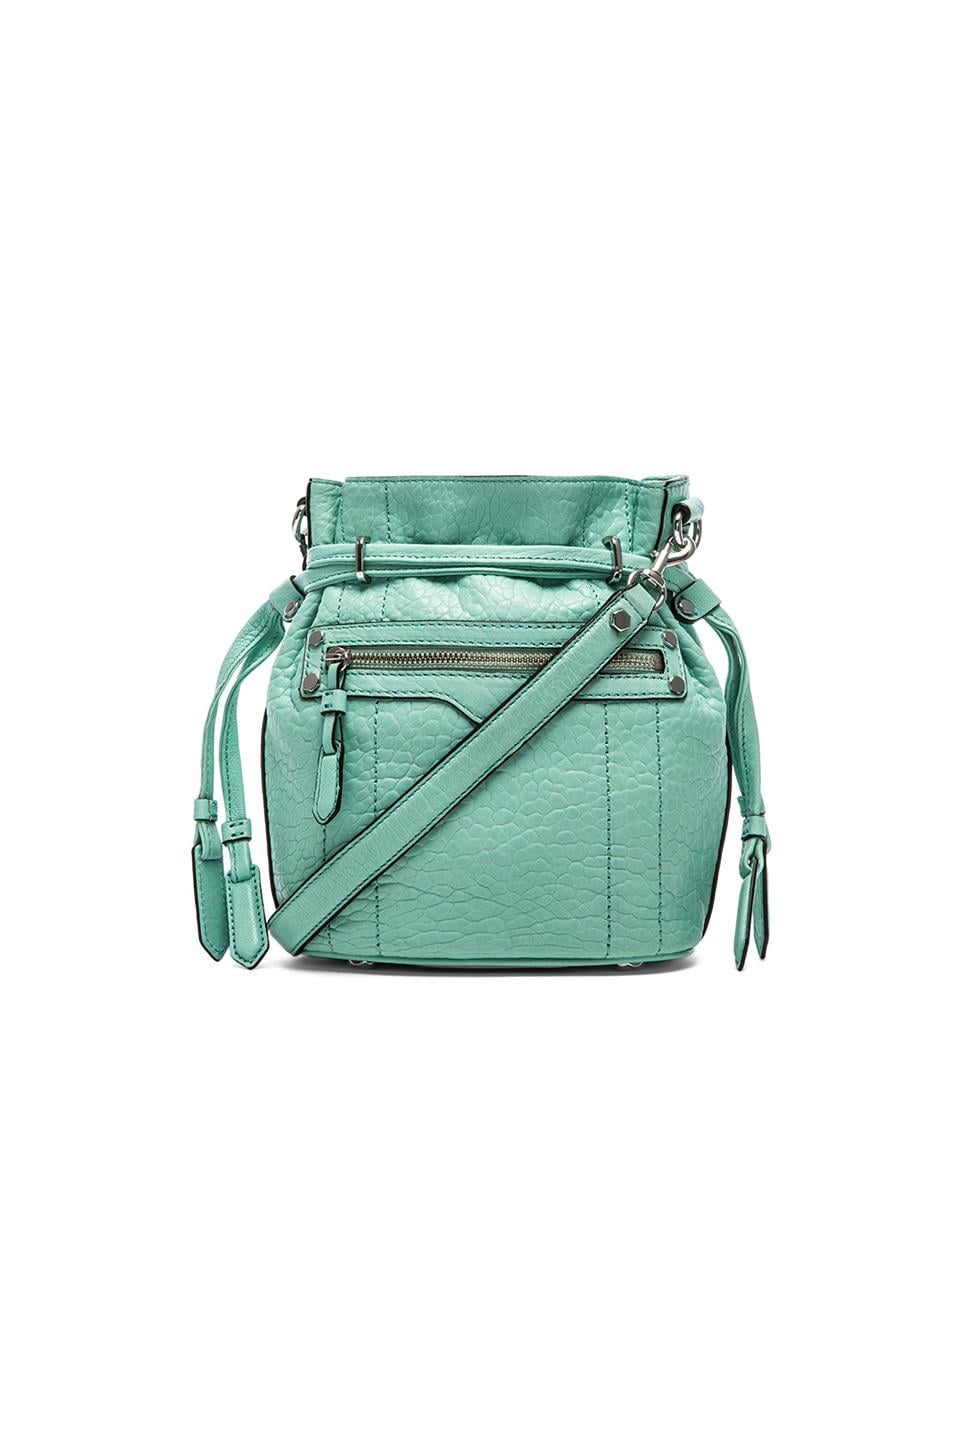 Rebecca Minkoff Mini Harley Bucket in Minty